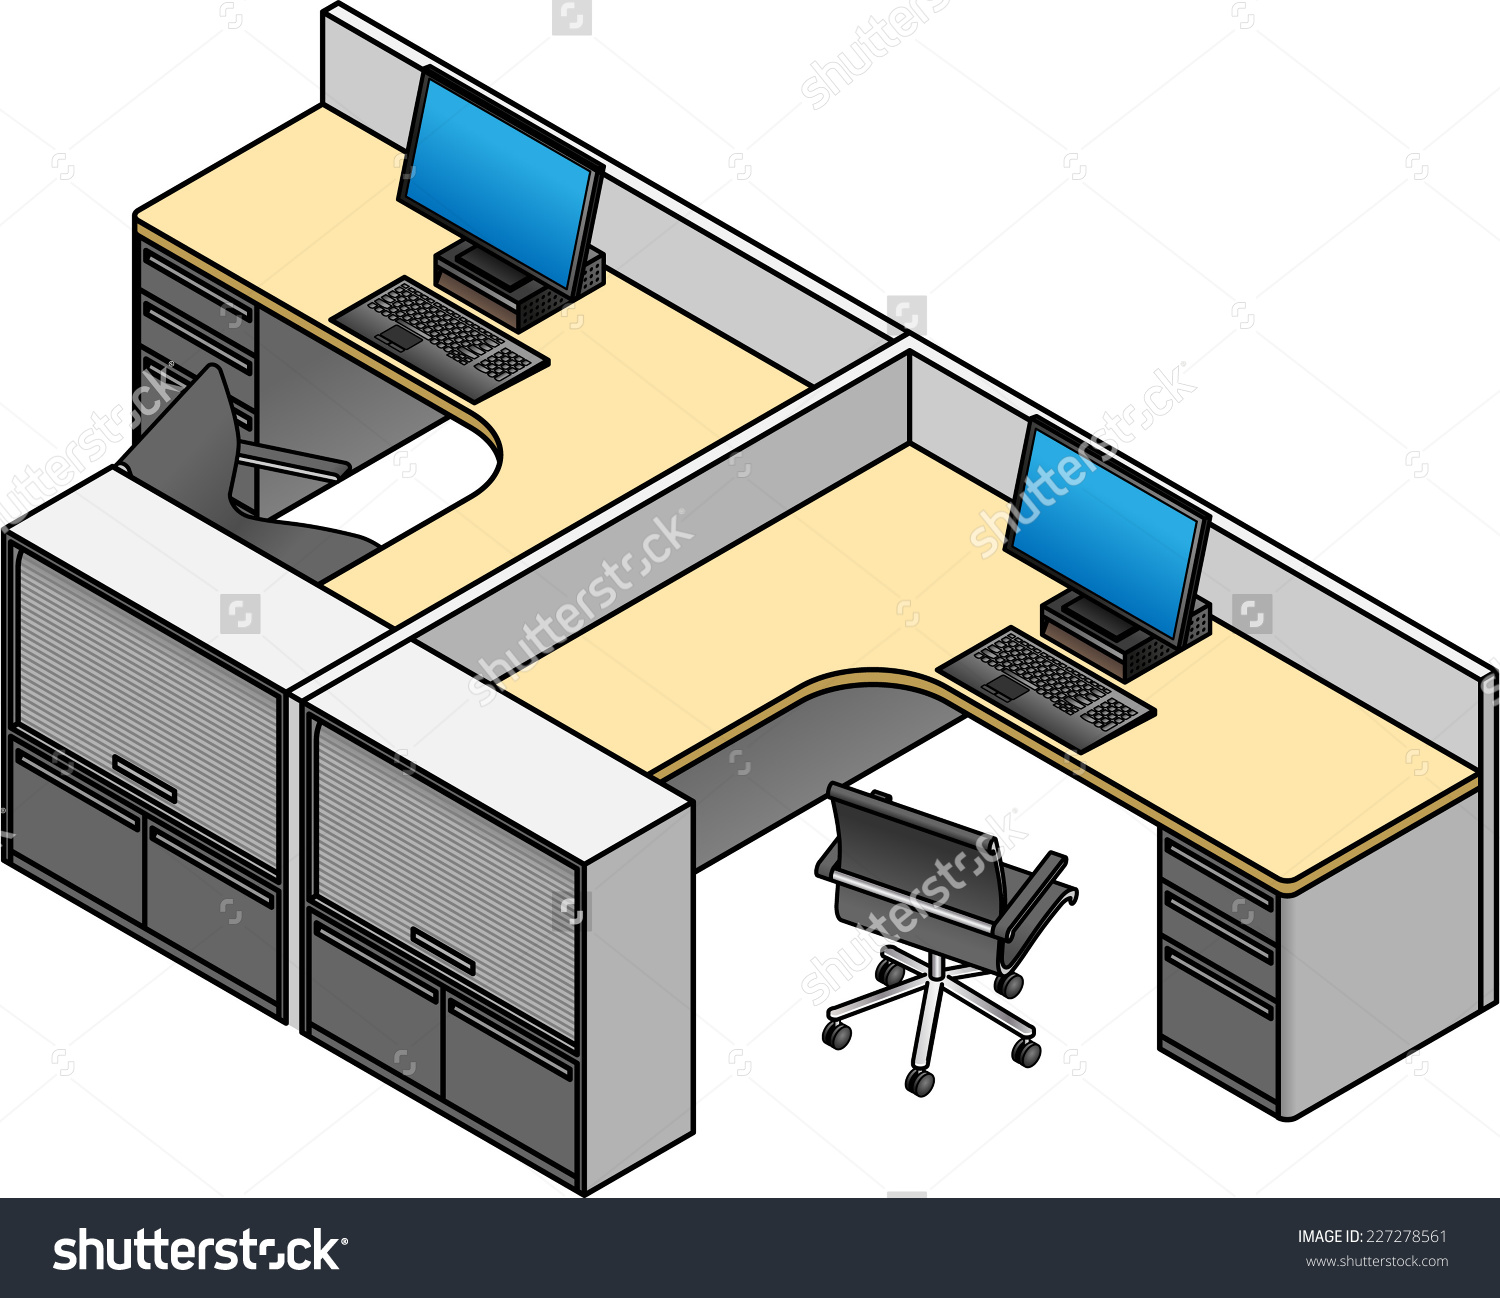 cubicles clipart clipground Elephant in the Room Expression Ignoring the Elephant in the Room